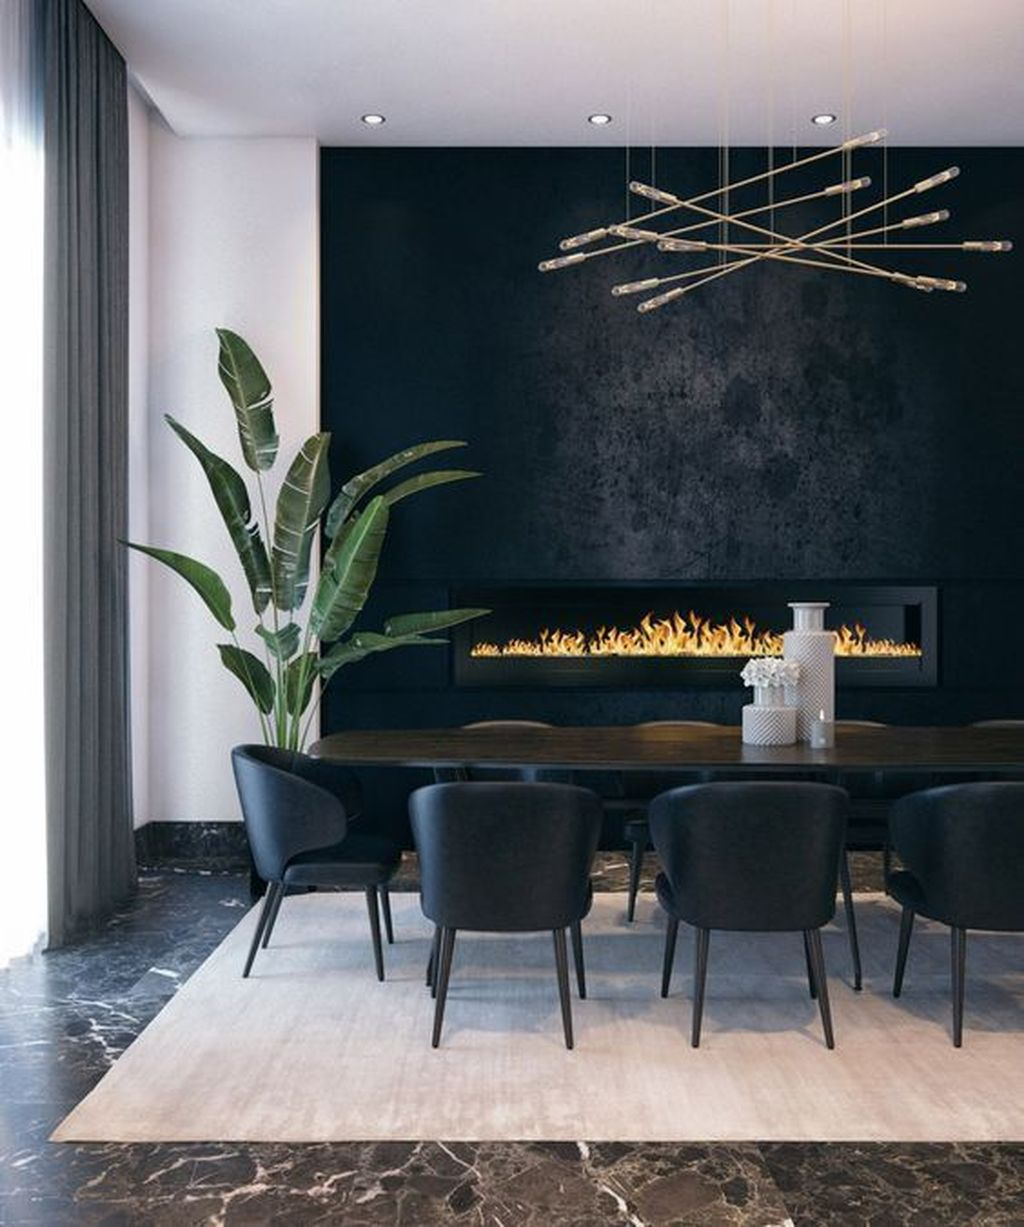 Admirable Dining Room Design Ideas You Will Love 33 1